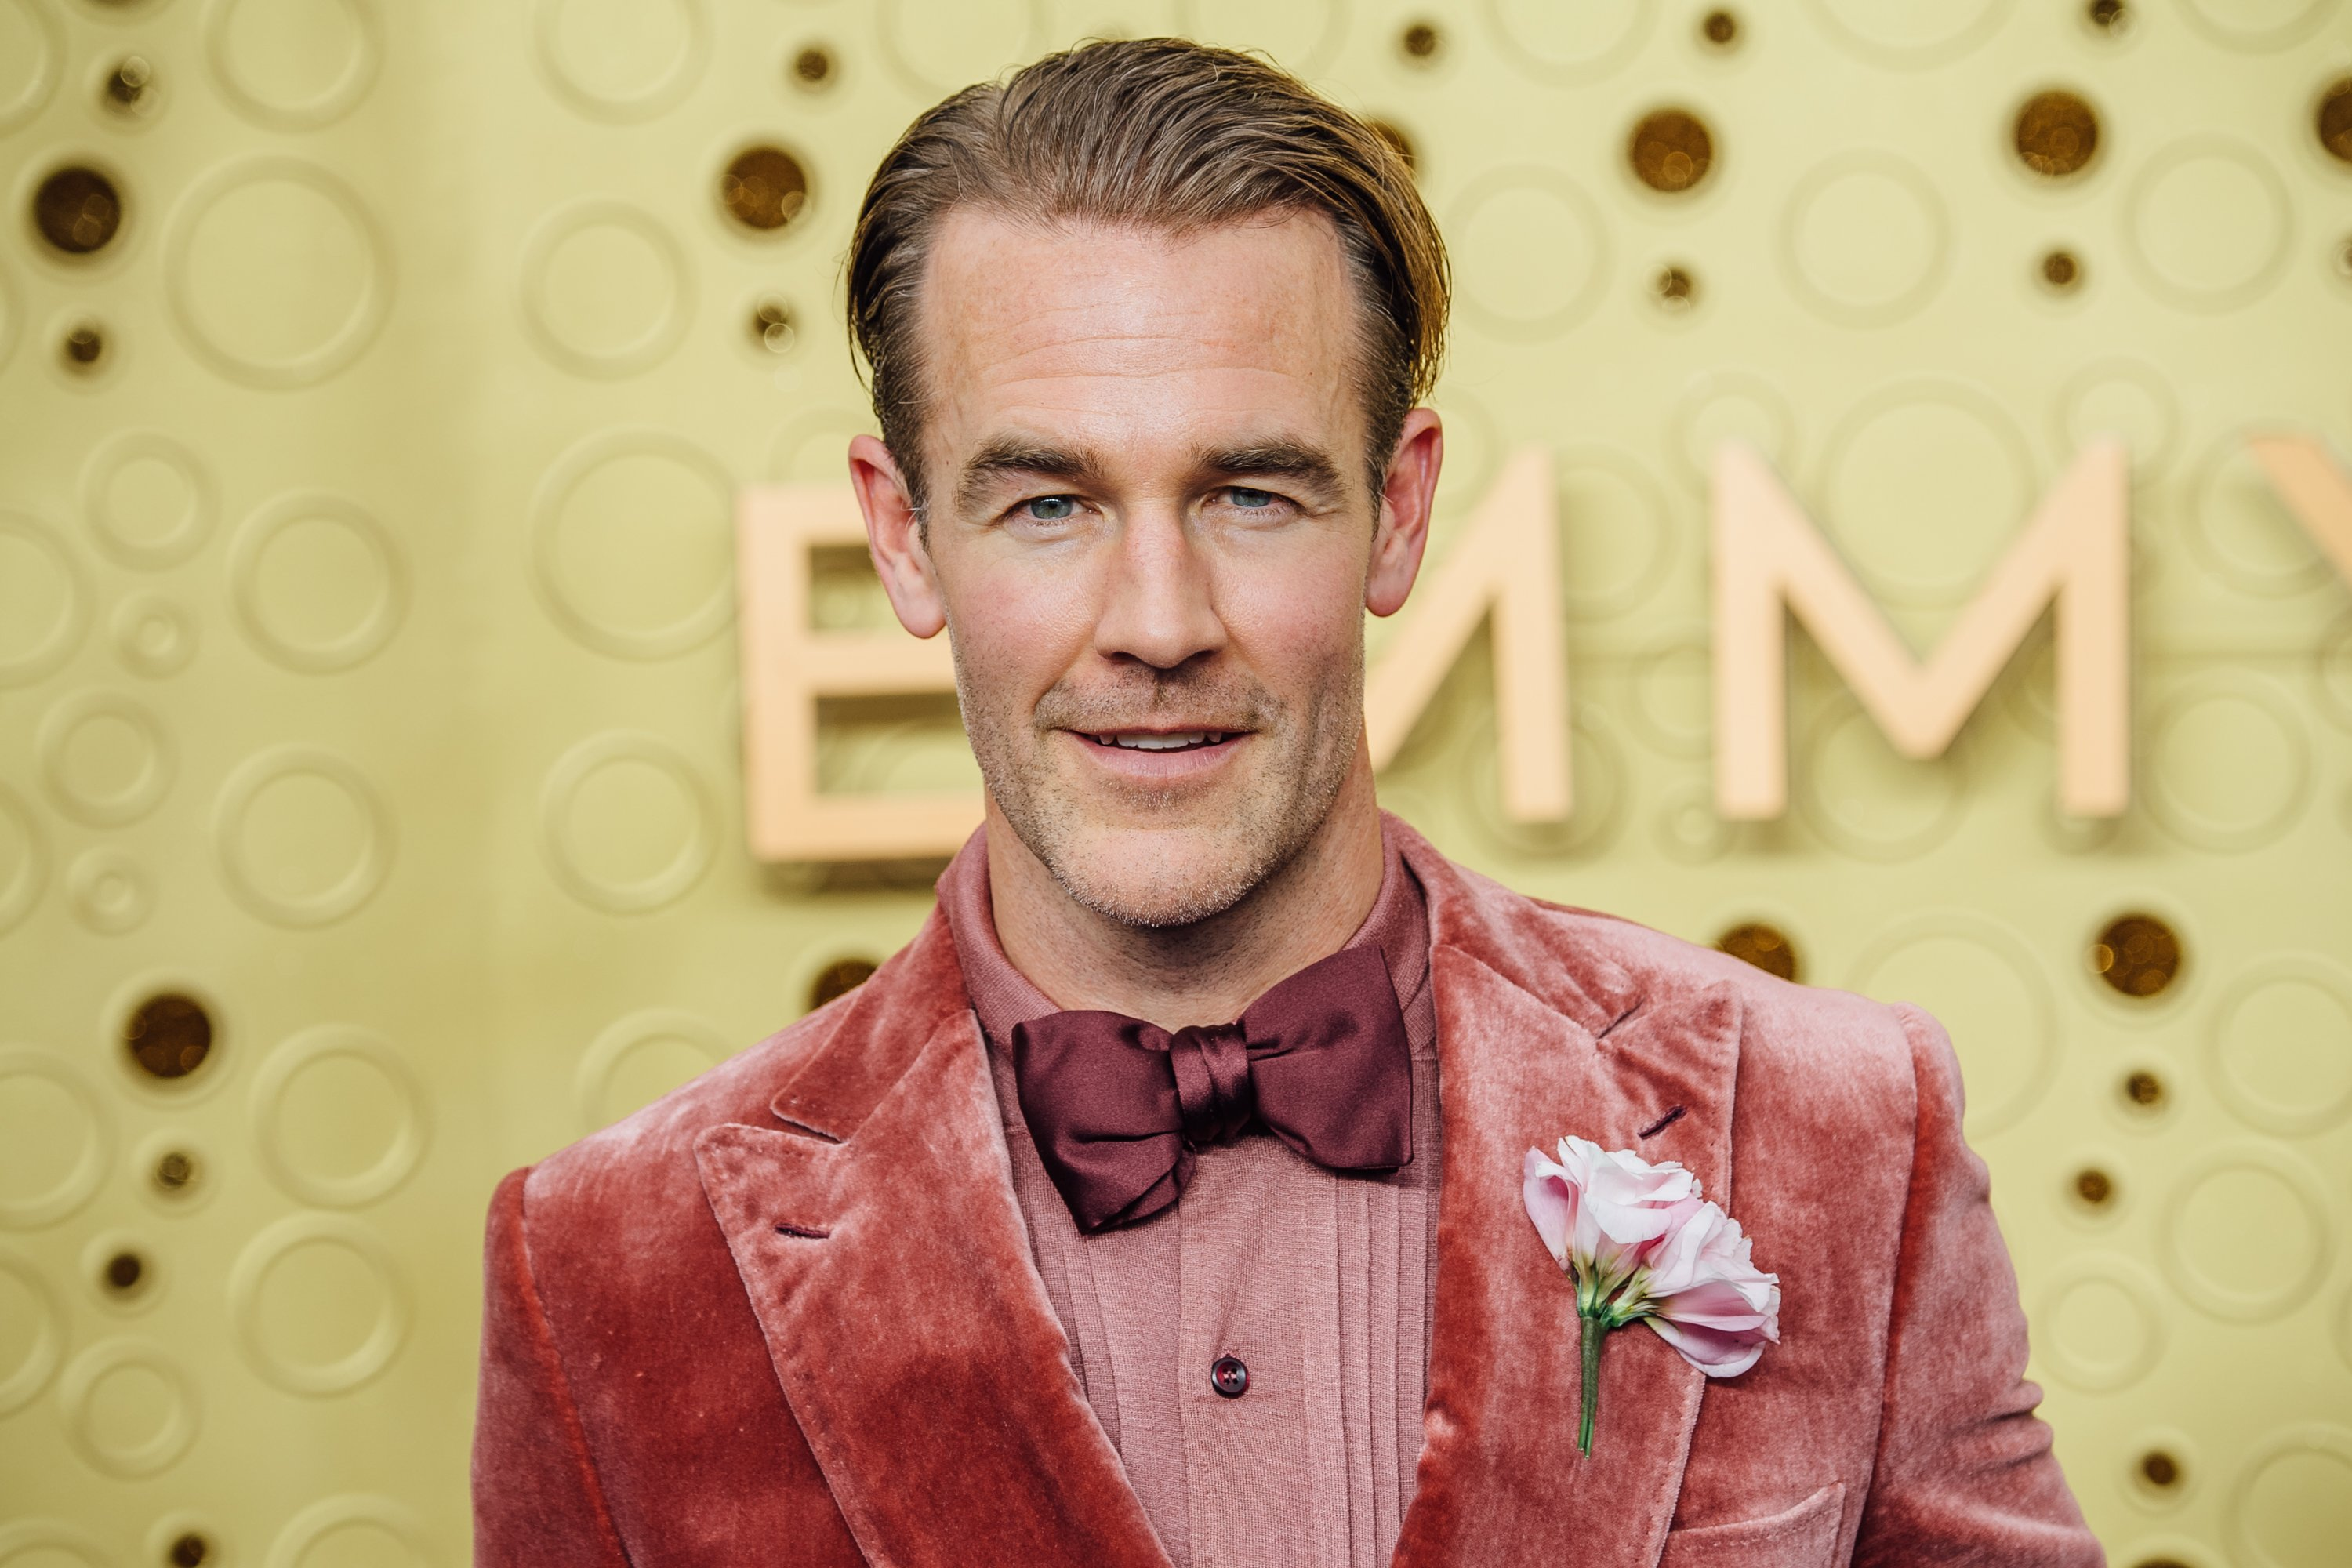 James Van der Beek arrives at the 71st Emmy Awards at Microsoft Theater on September 22, 2019 in Los Angeles, California | Photo: Getty Images